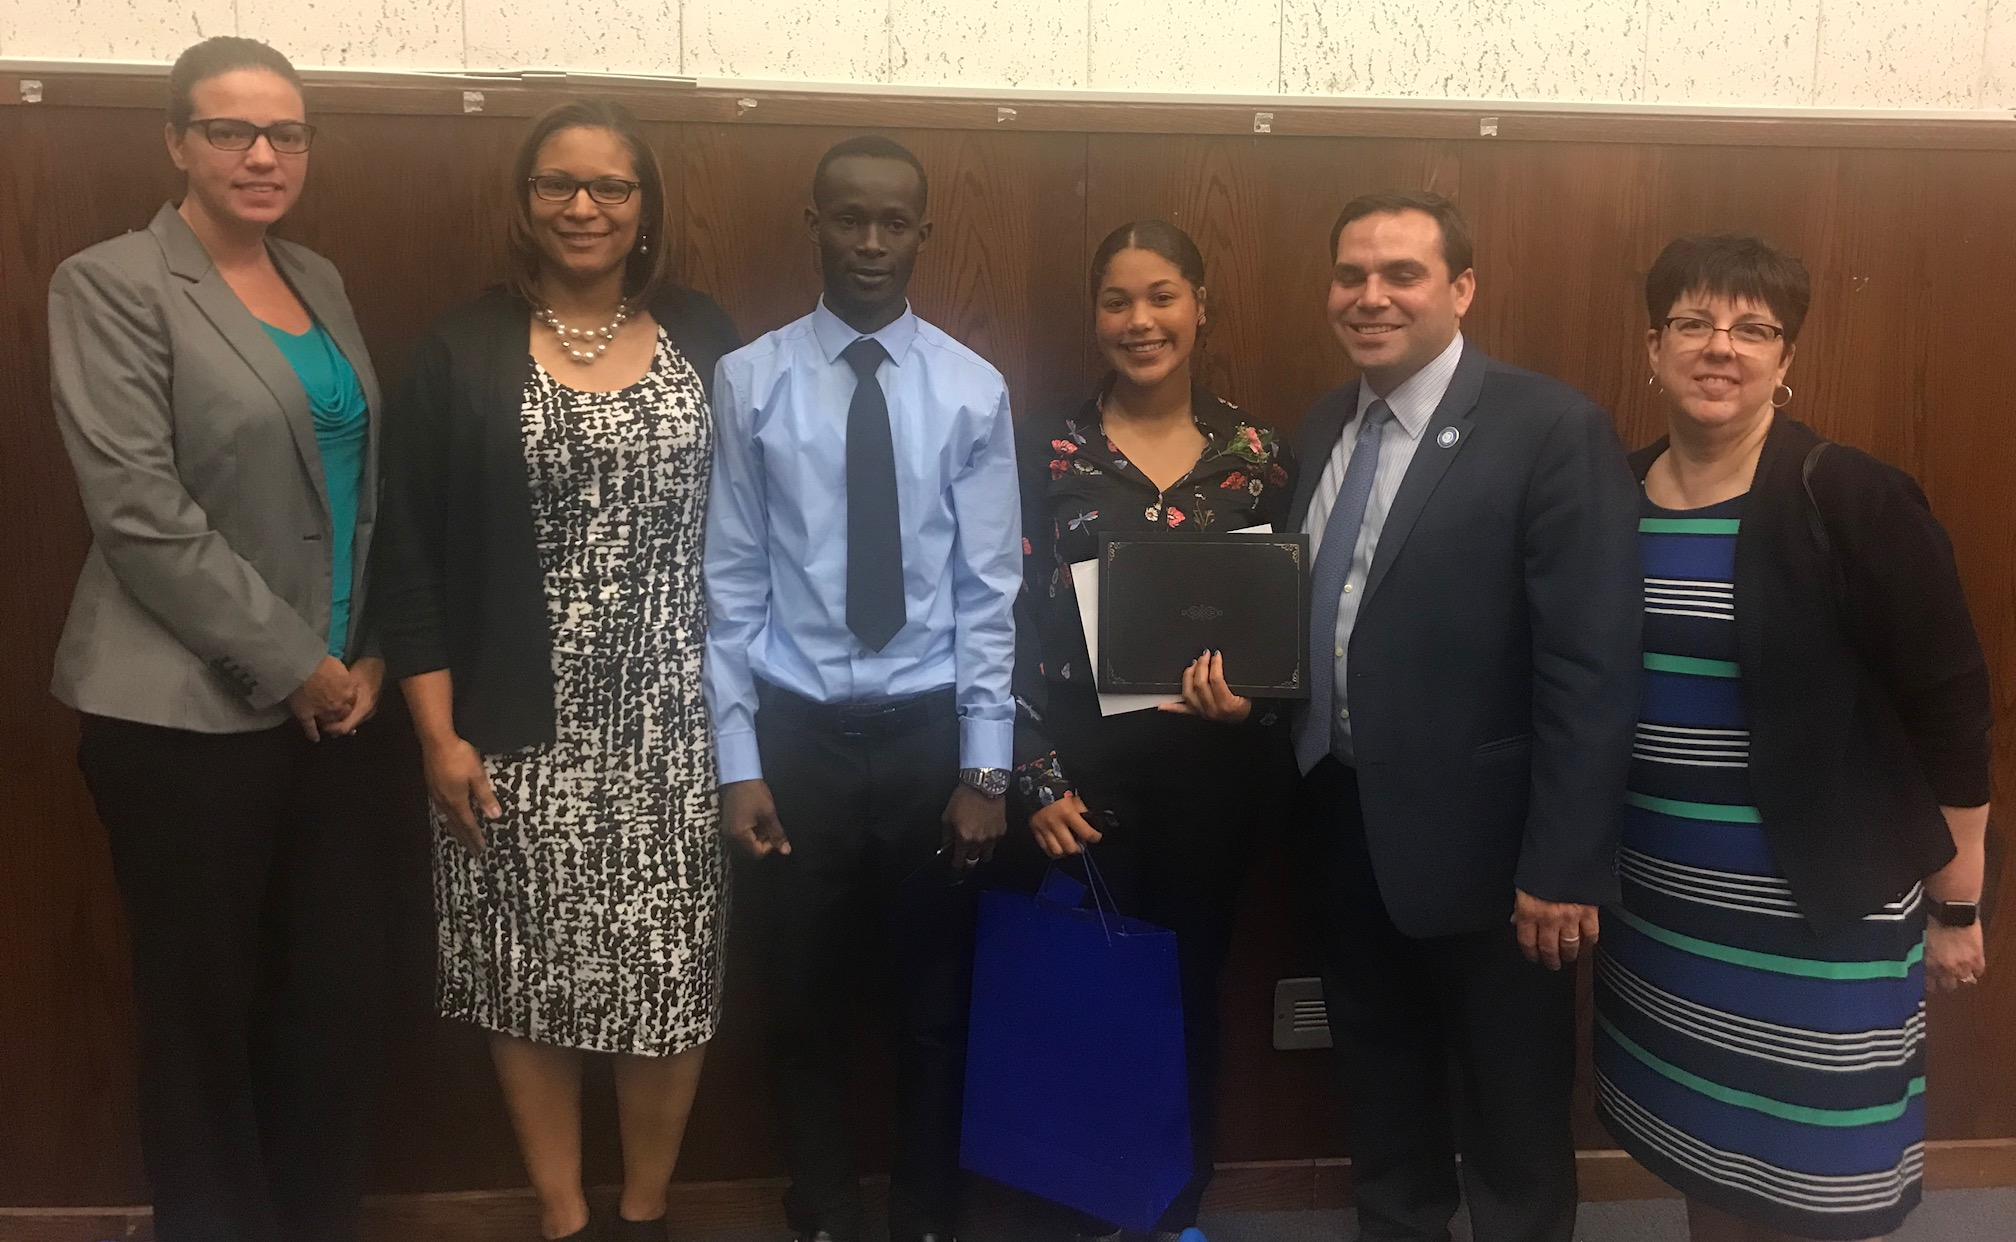 Jean Gnanvom and Angelina Ovalles receive Superintendent Awards